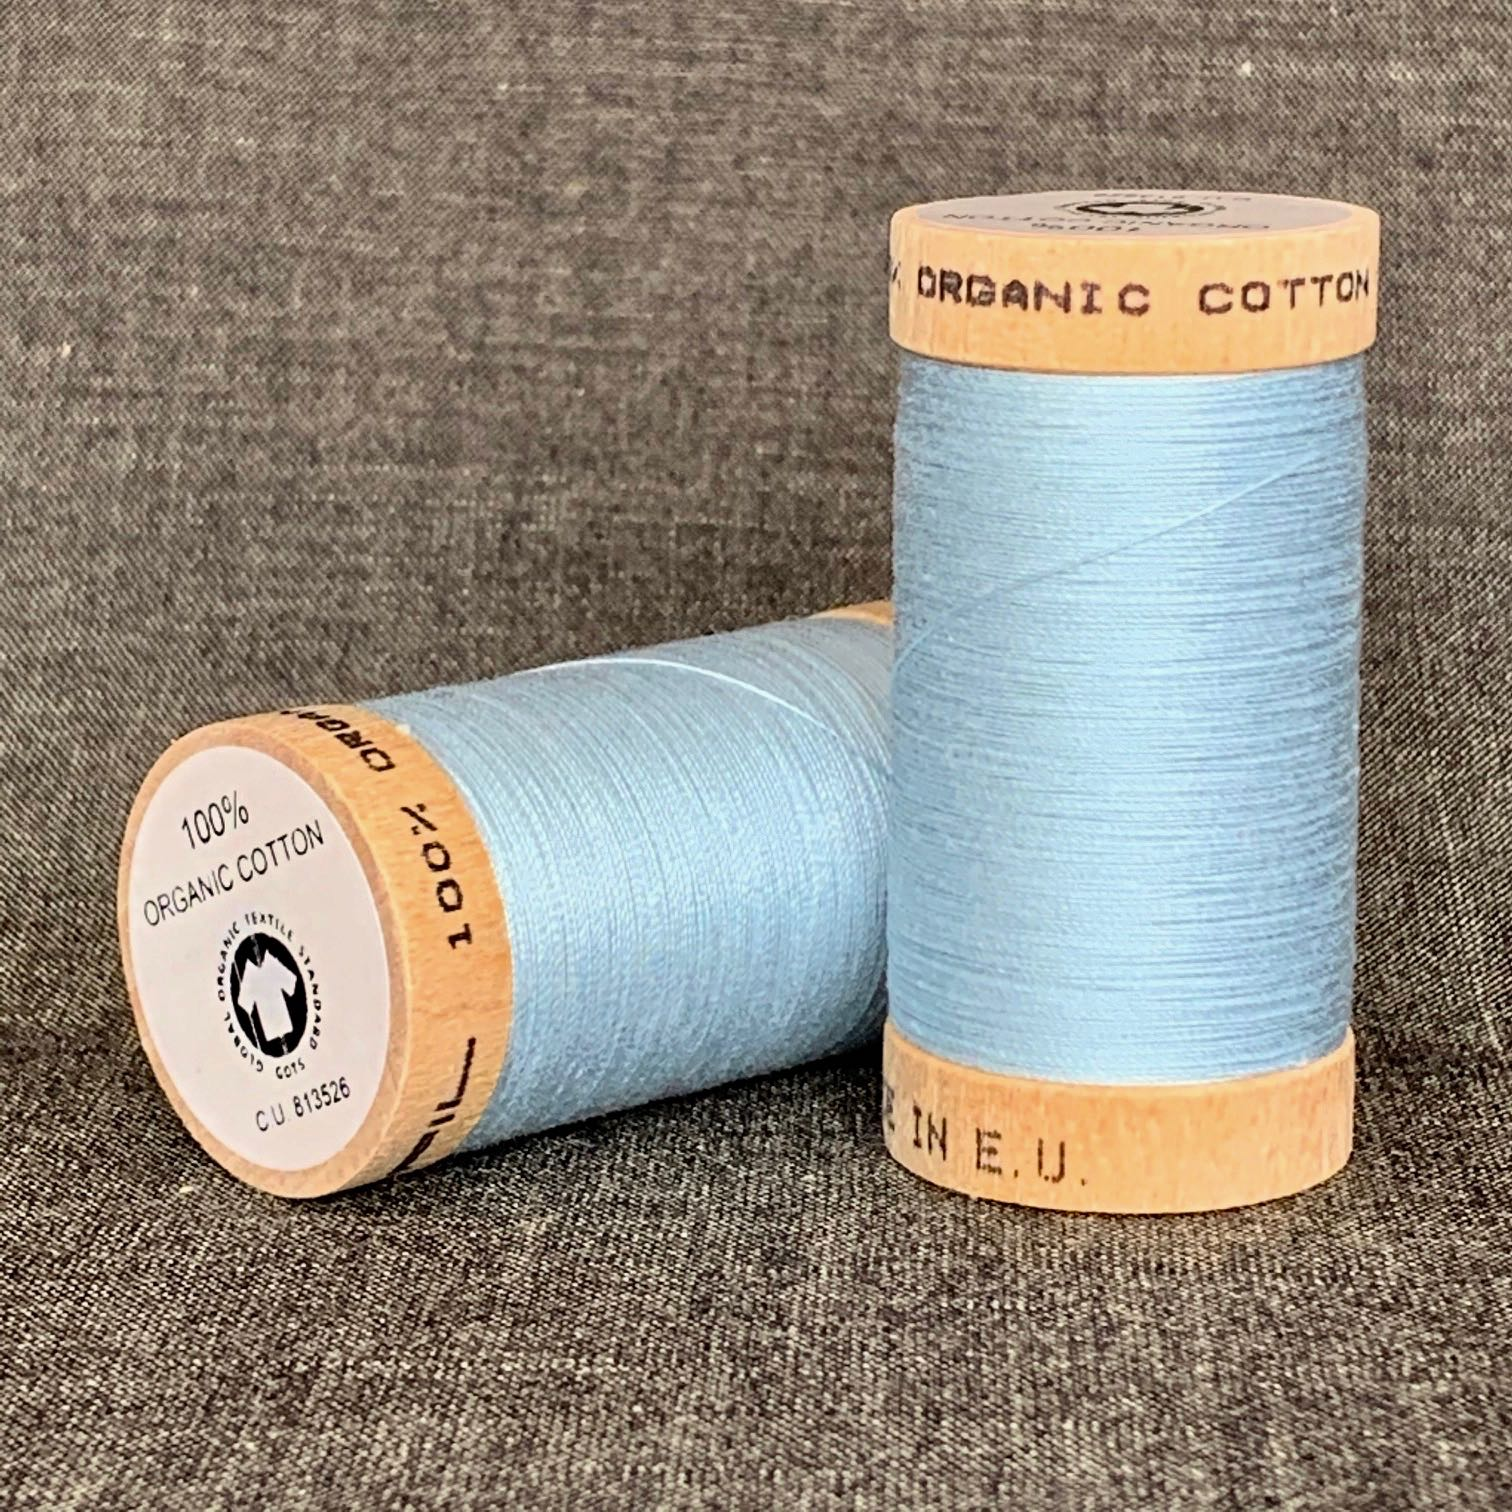 Scanfil Organic Cotton Sewing Thread Sky Blue